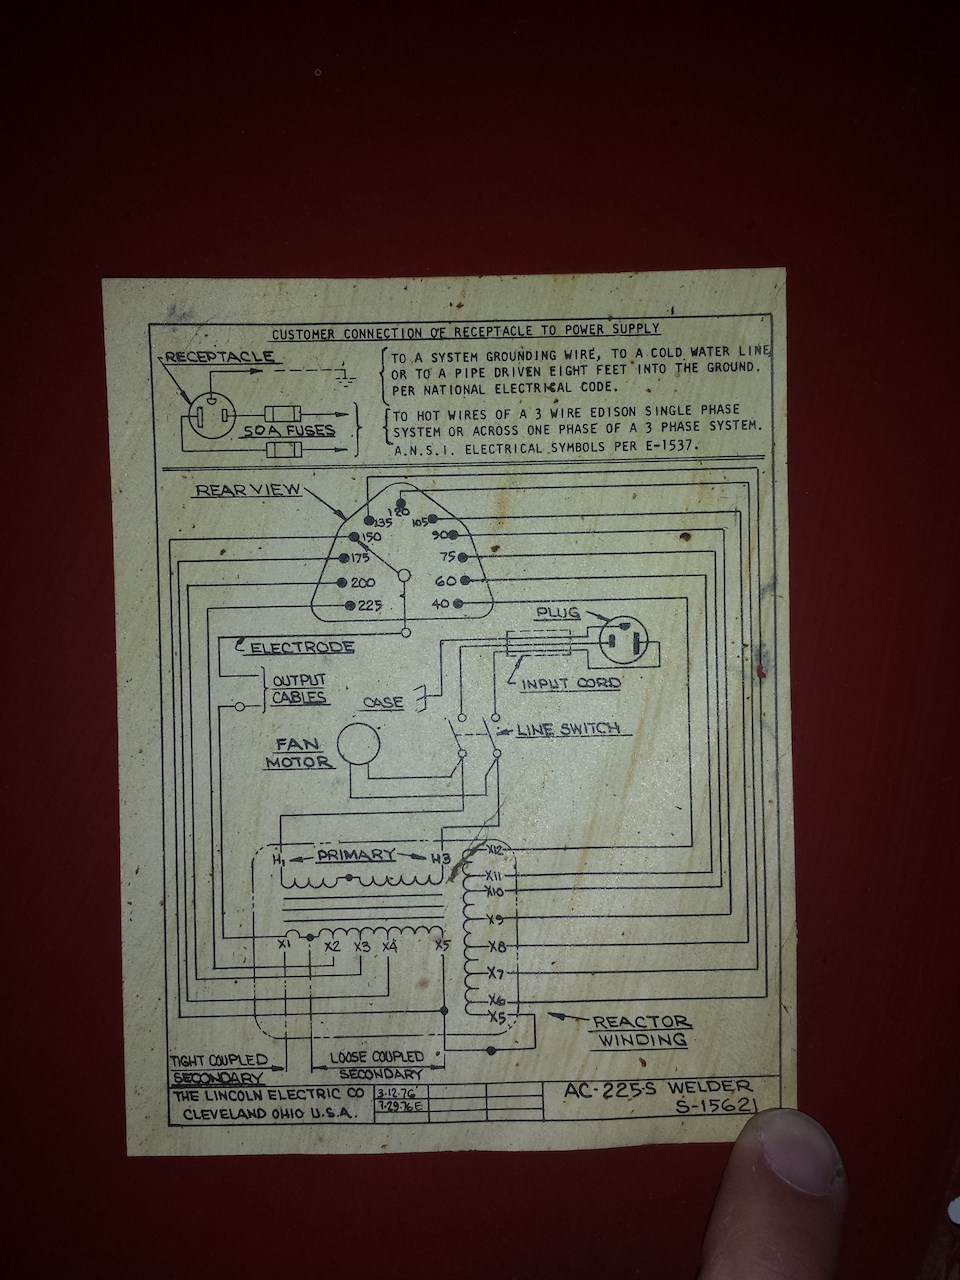 Lincoln Ac 225 Plug Wiring Diagram Diagrams Welder 26 Images For An Old Arc